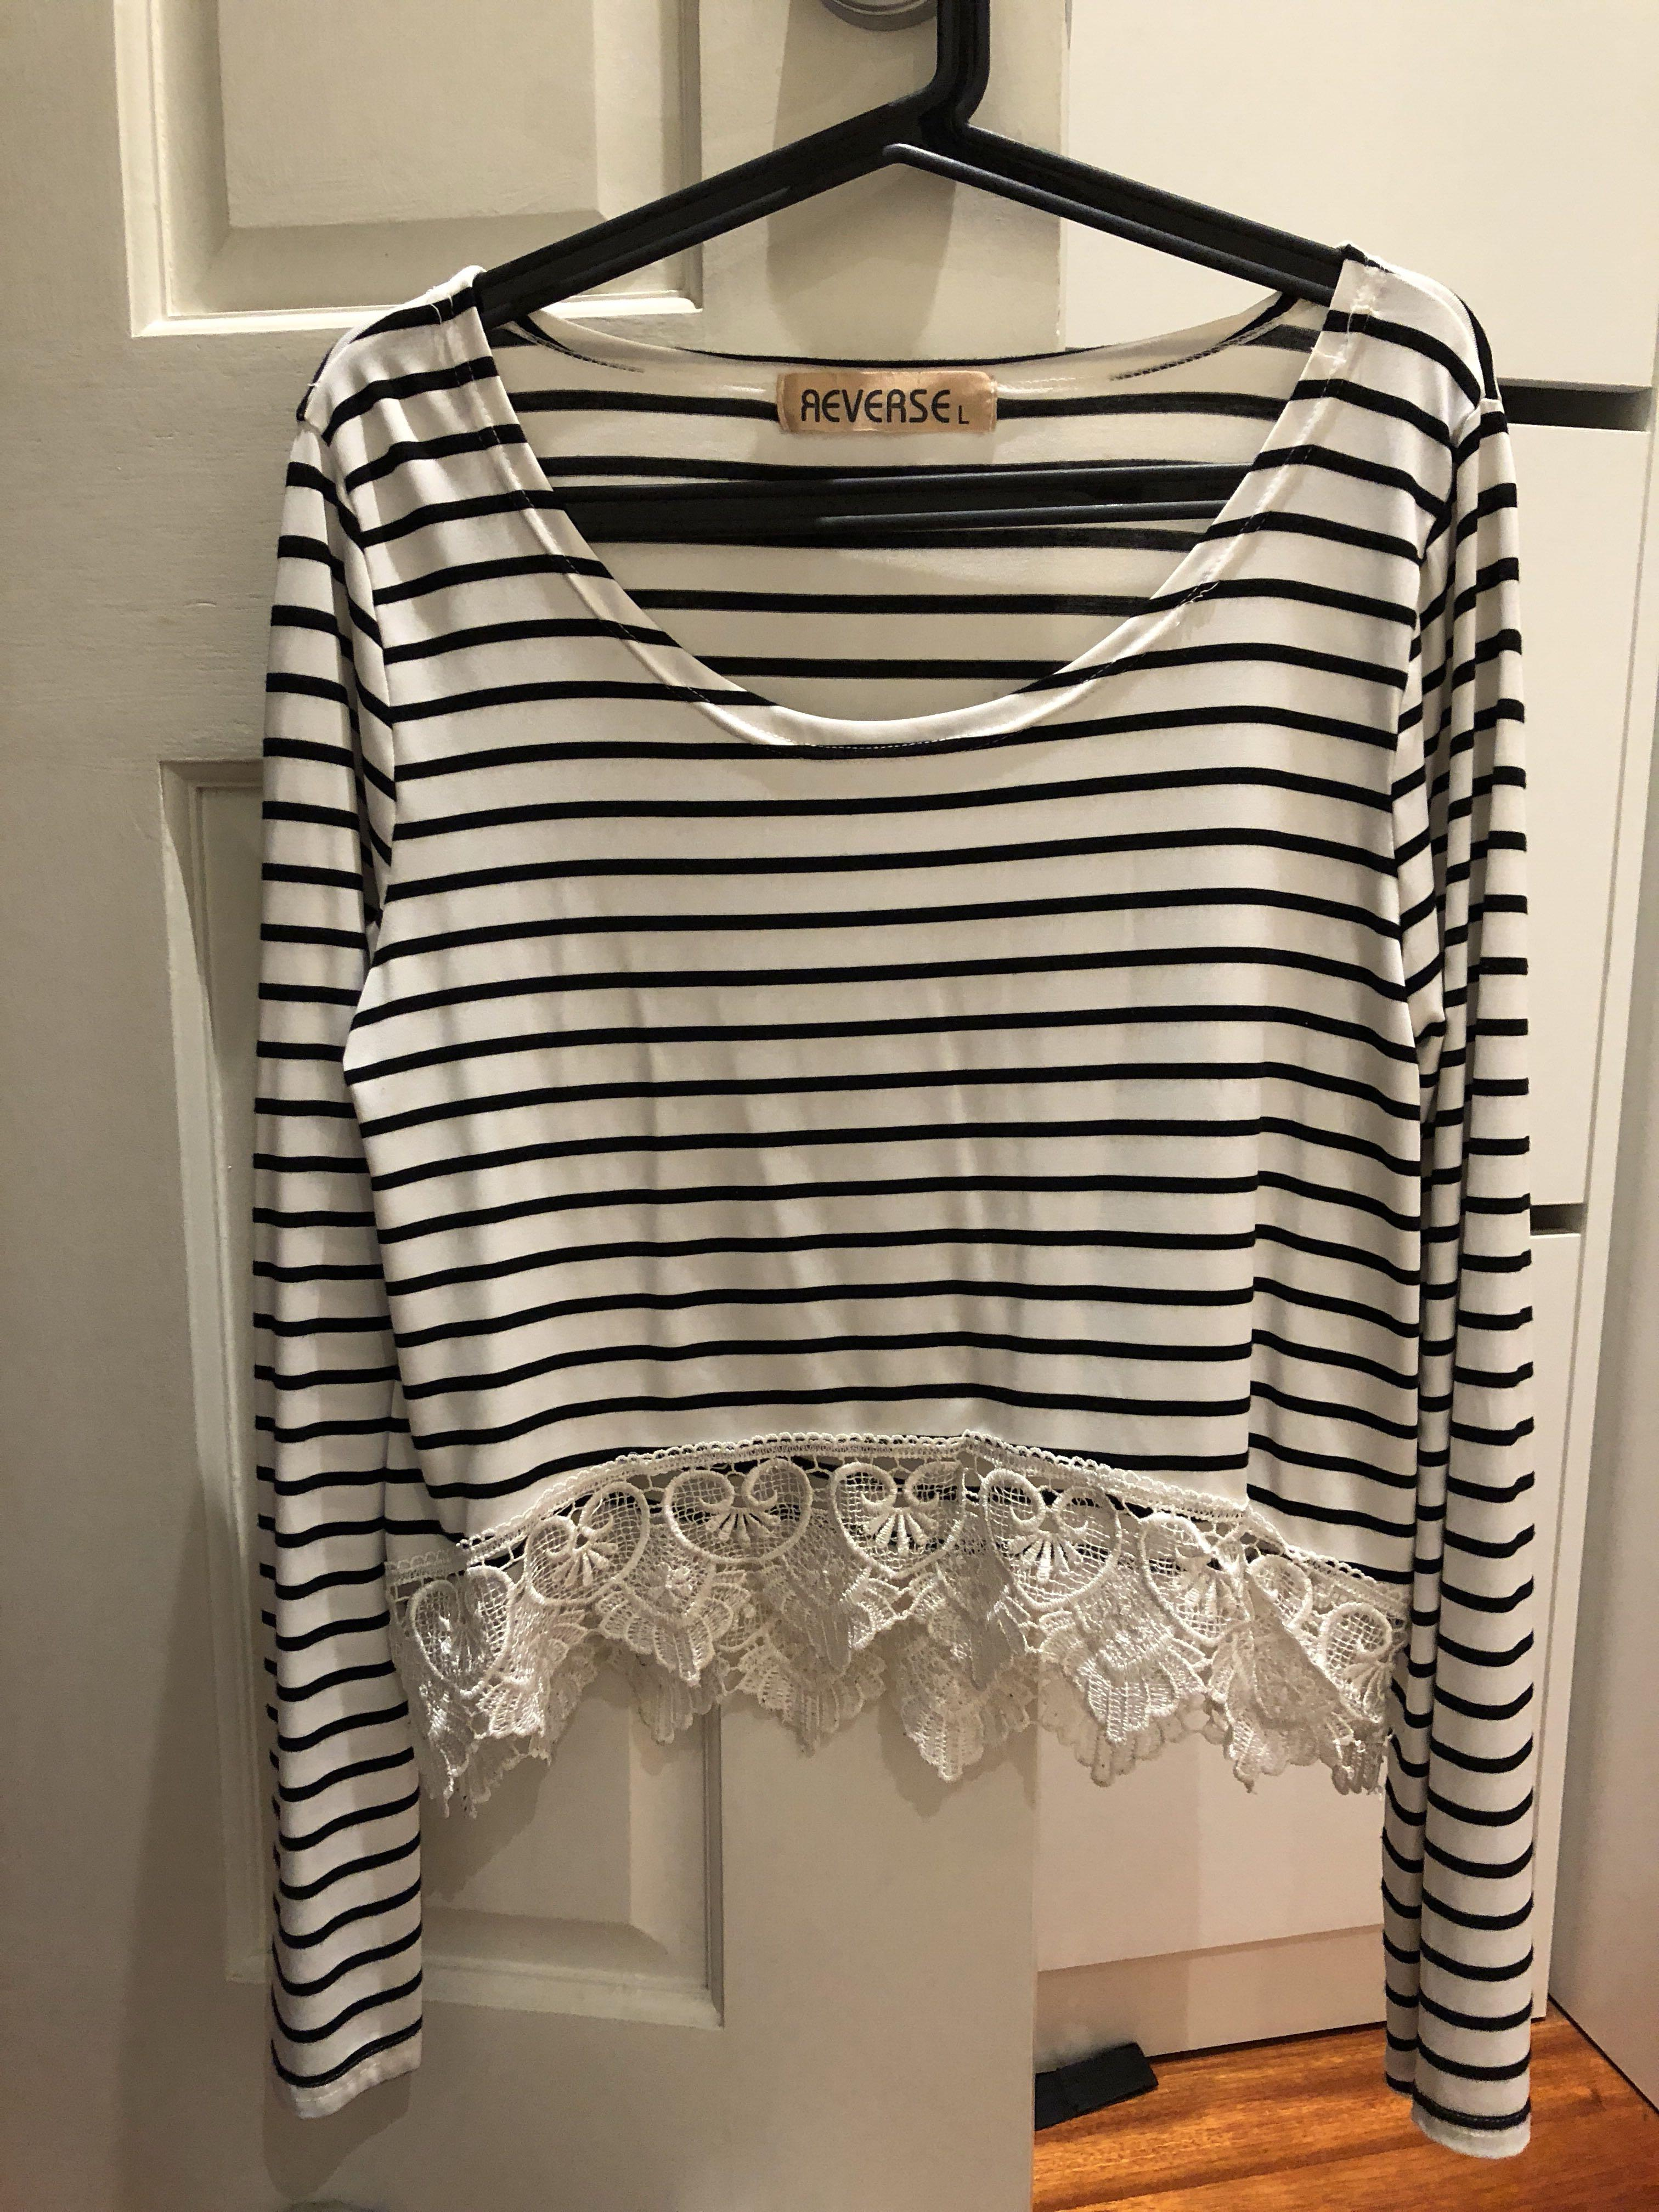 Striped top with lace detailing